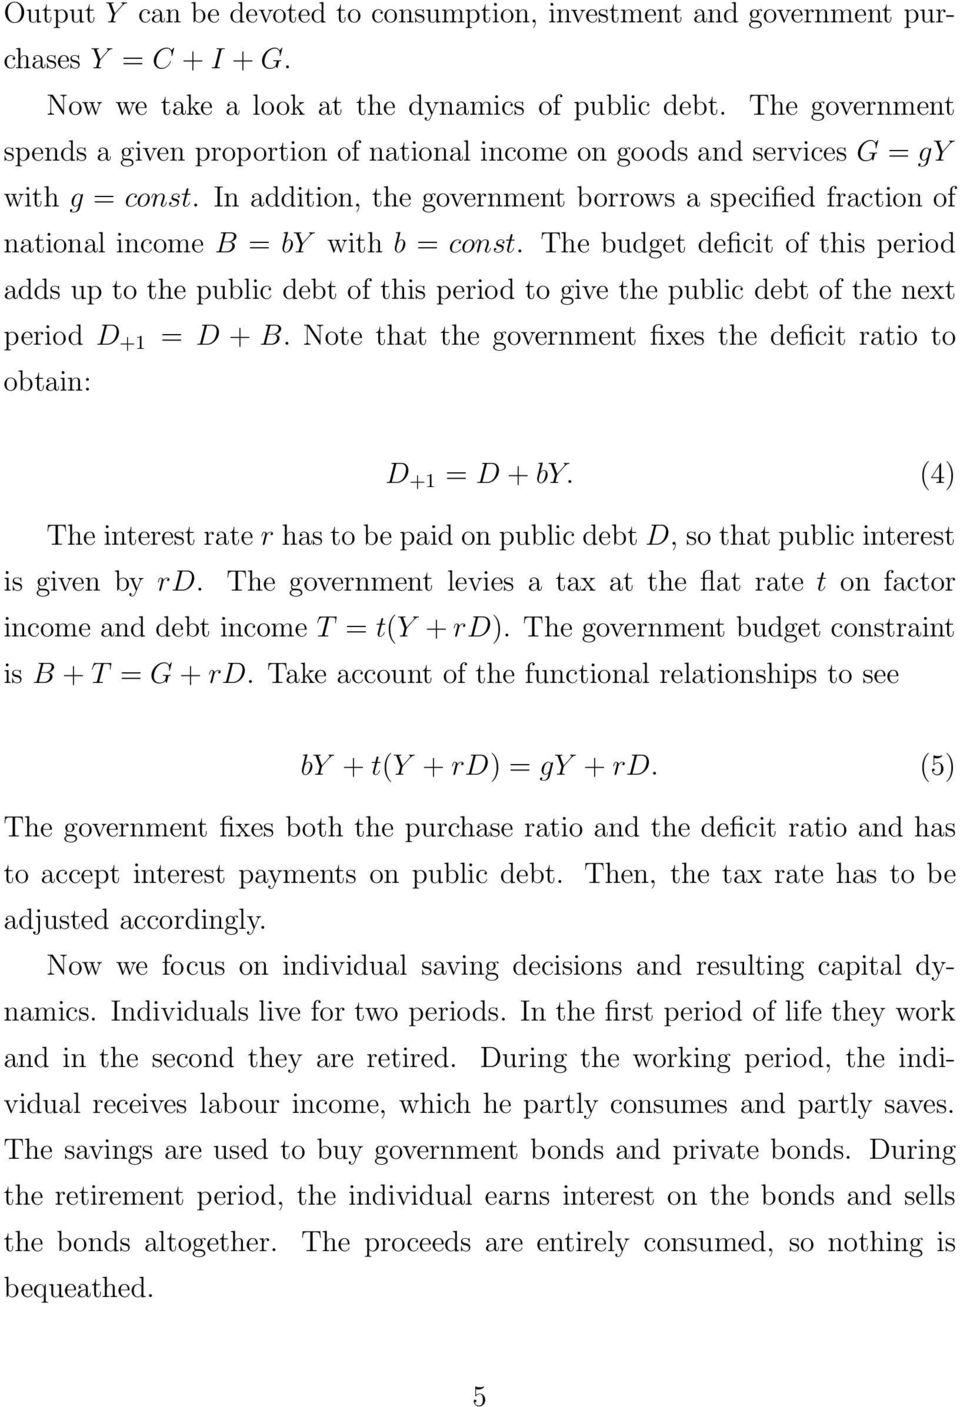 In addition, the government borrows a specified fraction of national income B = by with b = const.